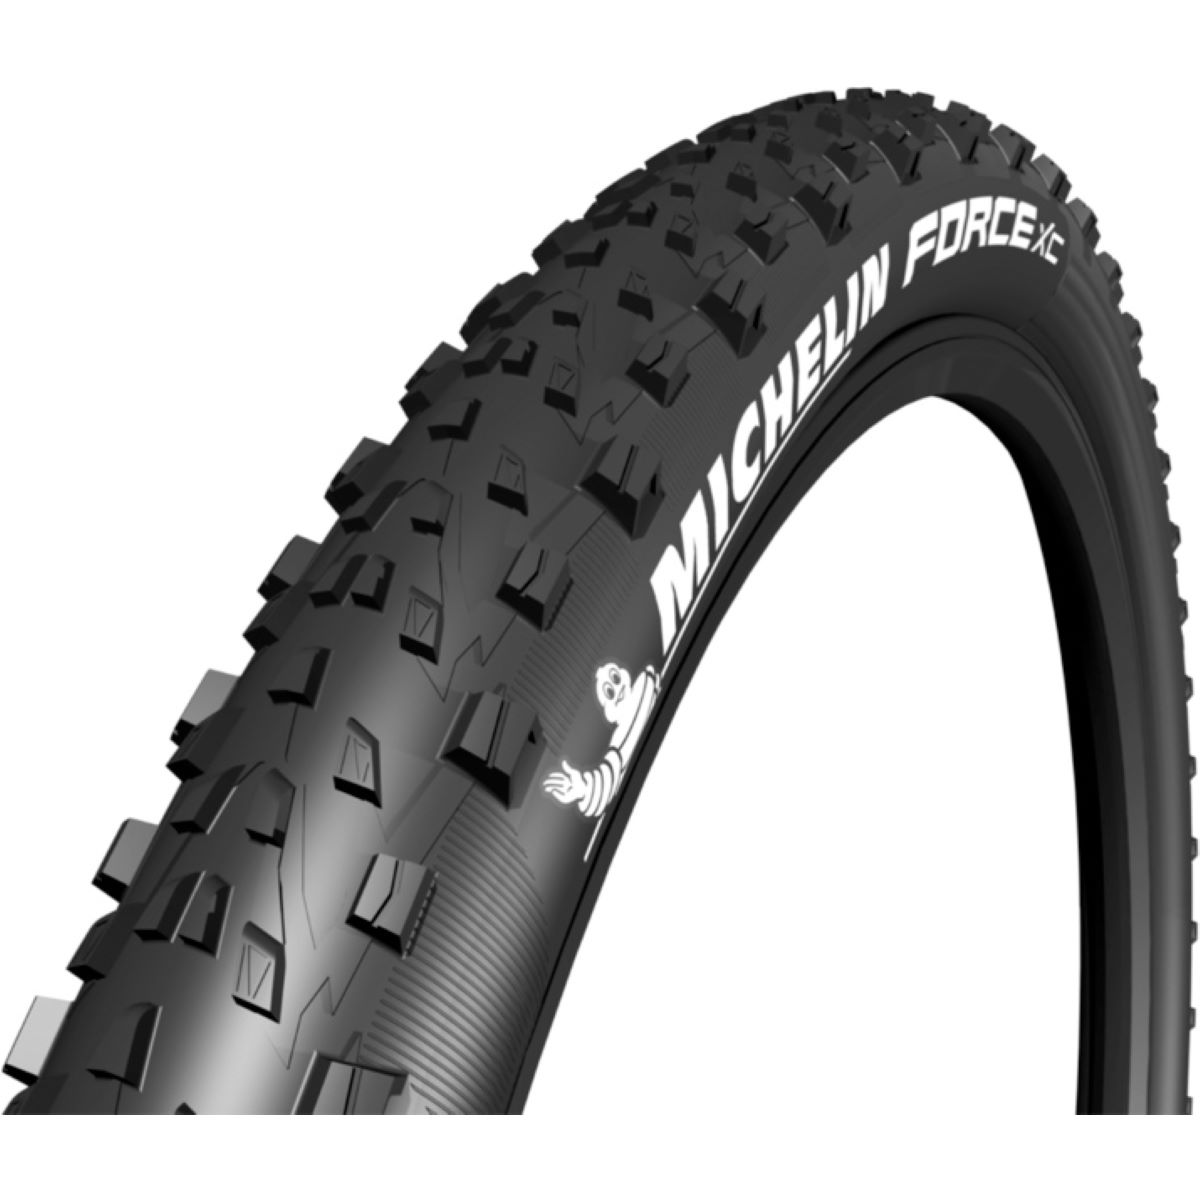 Pneu VTT Michelin Force XC Competition - 2.1' 26' Noir Pneus